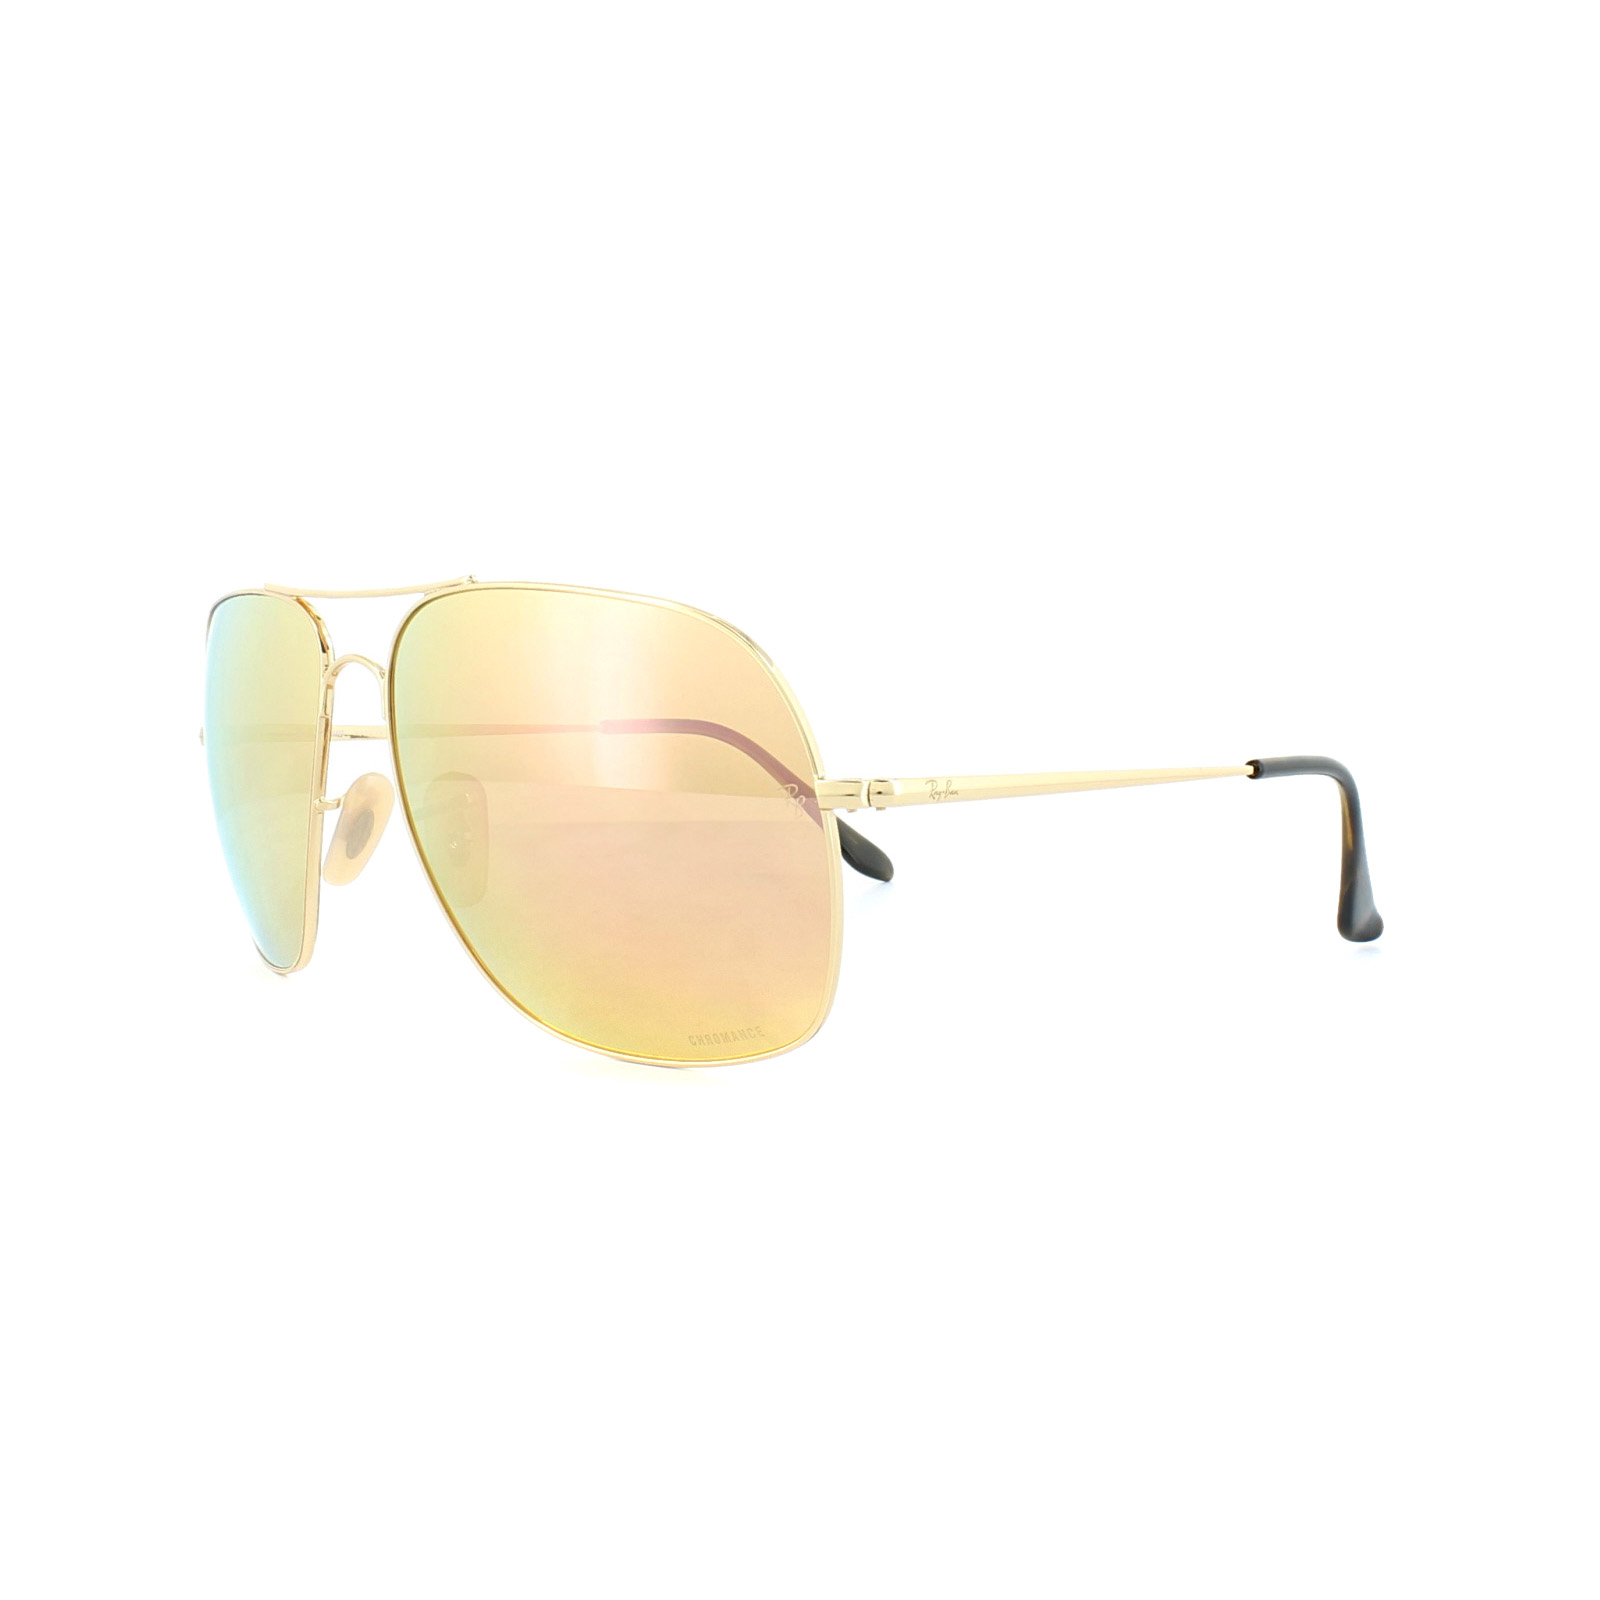 Large Square Chromance Aviator Sunglasses in Gold Pink Gold Mirror Polarised RB3587CH 001/I0 61 Ray-Ban wg5Q7Y